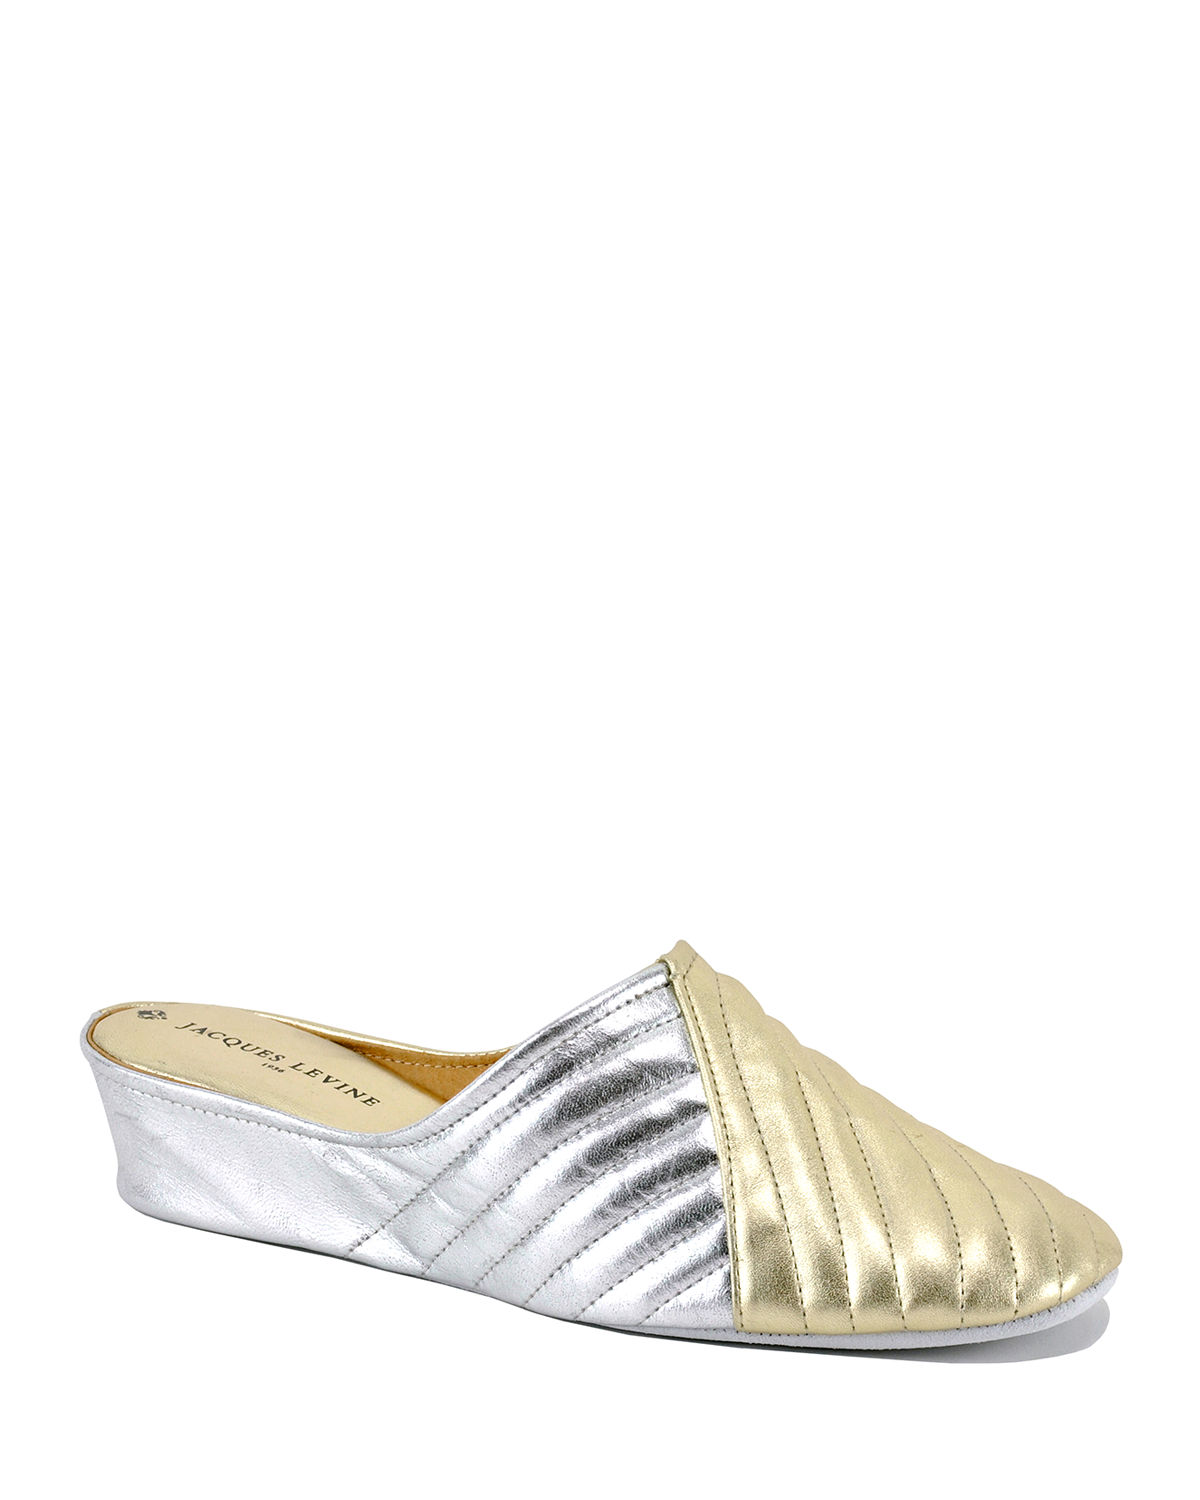 Two-Tone Metallic Quilted Slippers